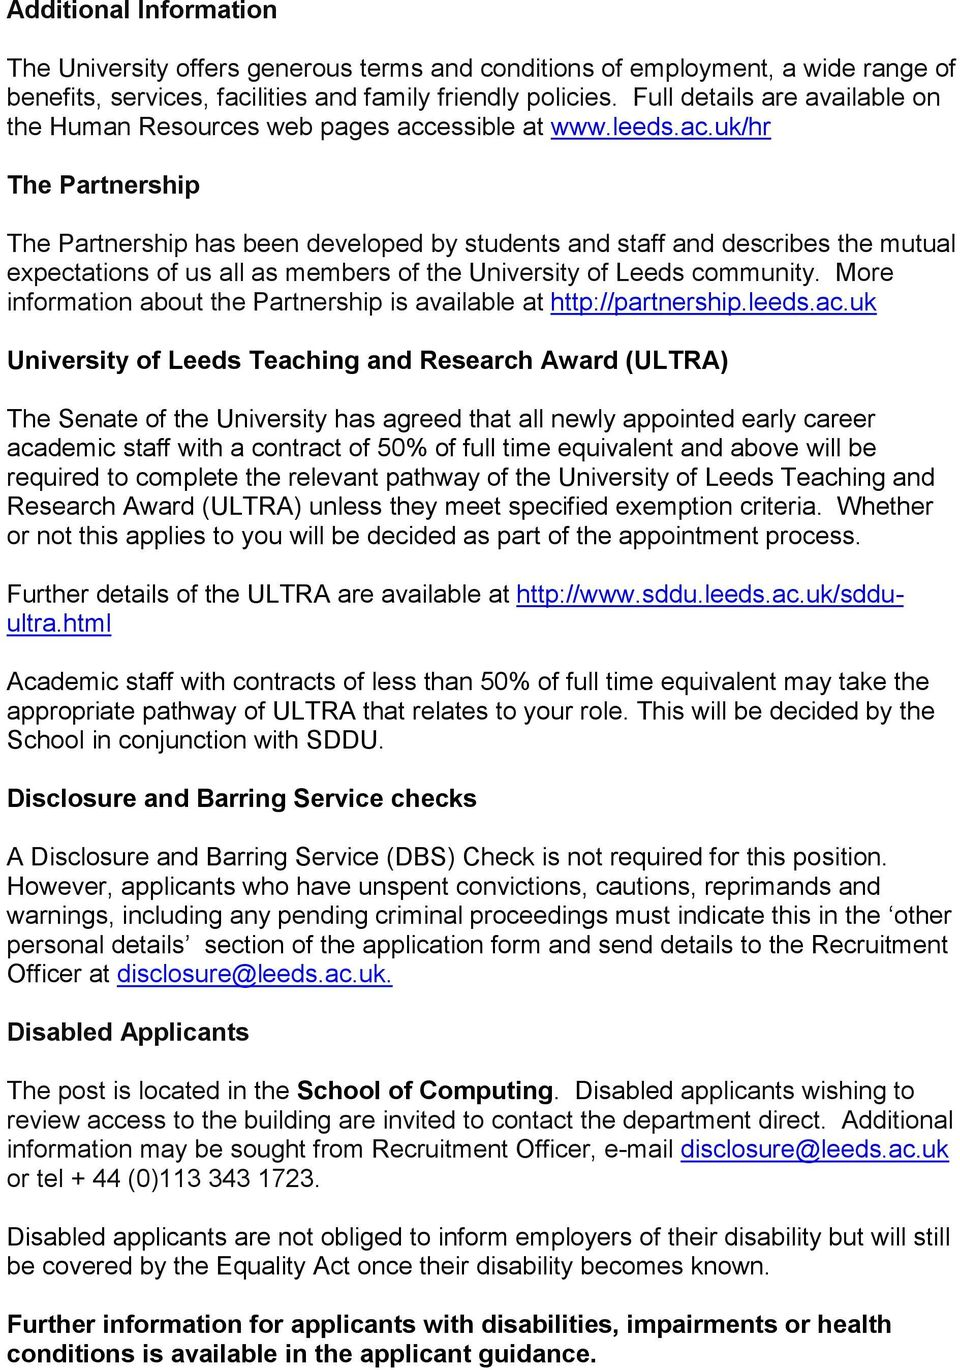 essible at www.leeds.ac.uk/hr The Partnership The Partnership has been developed by students and staff and describes the mutual expectations of us all as members of the University of Leeds community.